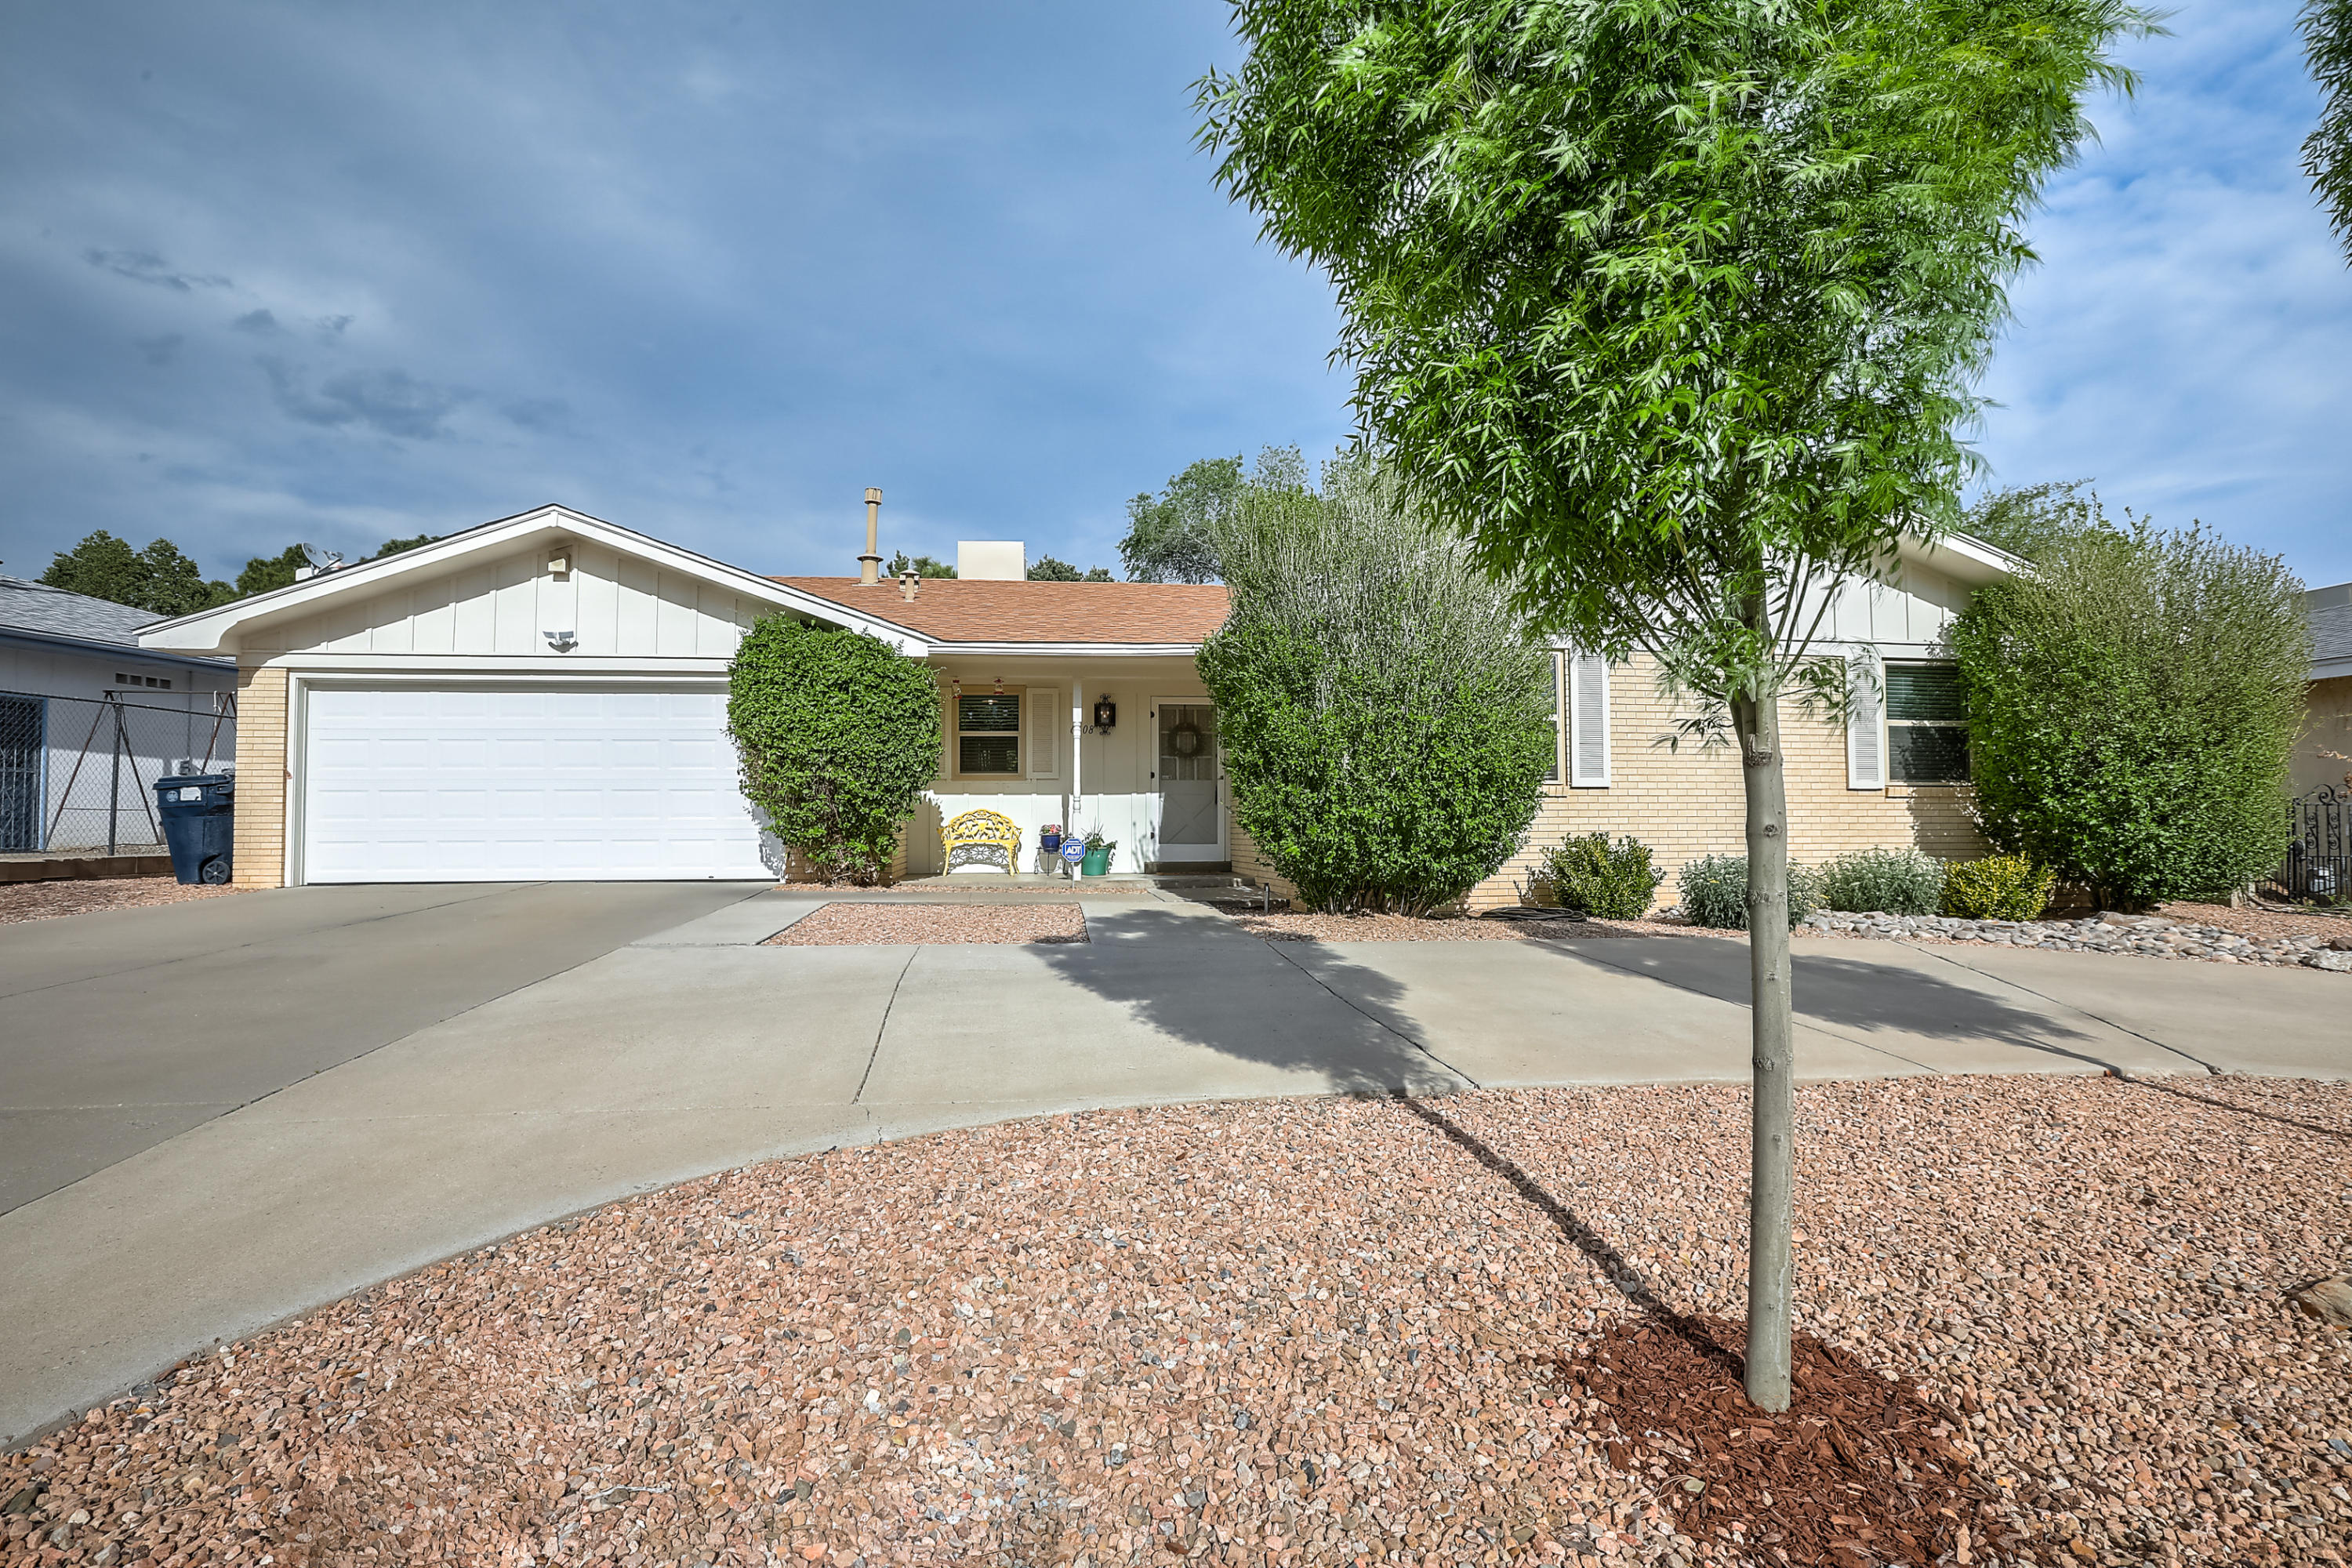 6608 Barber Place NE, Albuquerque, NM 87109 - Albuquerque, NM real estate listing